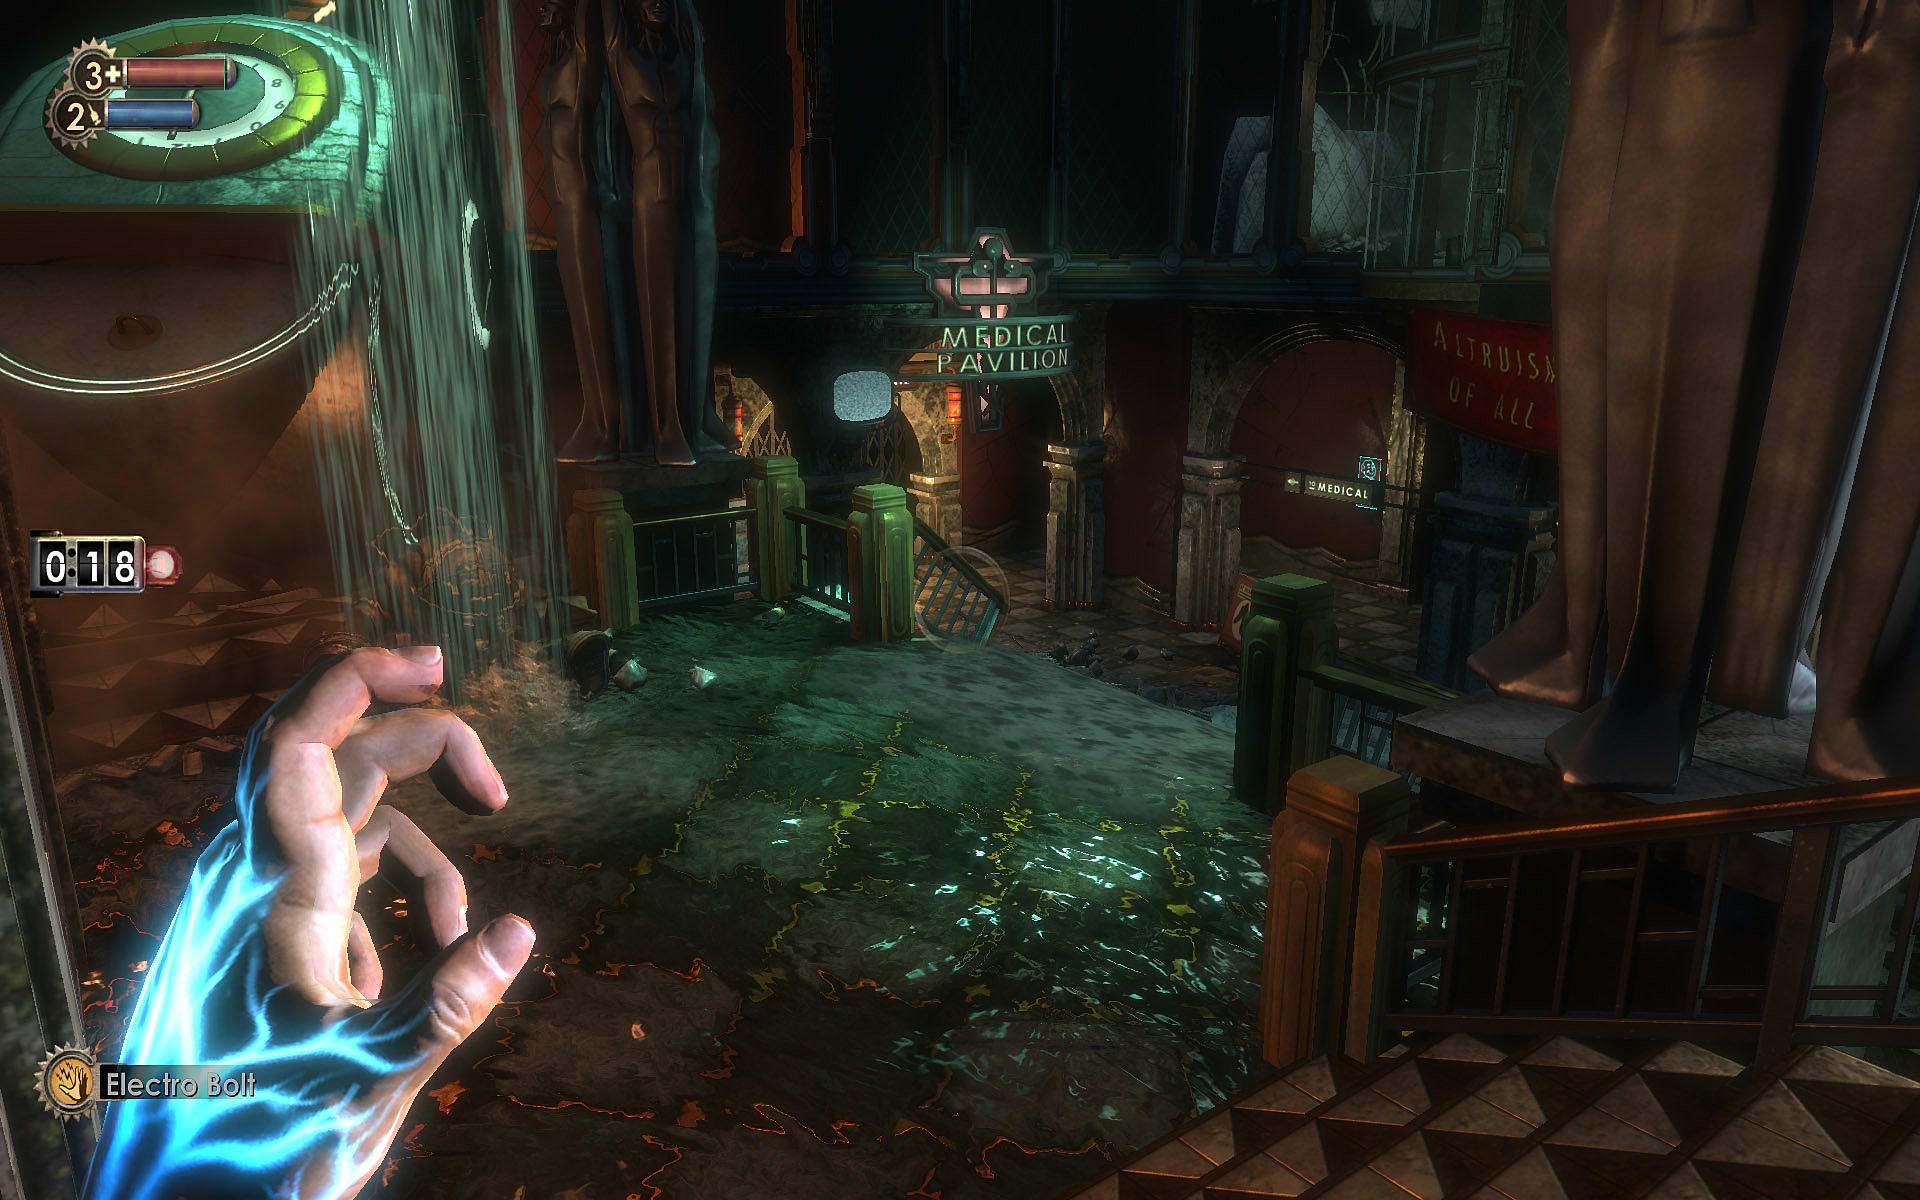 4 Awesome video games we'd never want to have happen in real